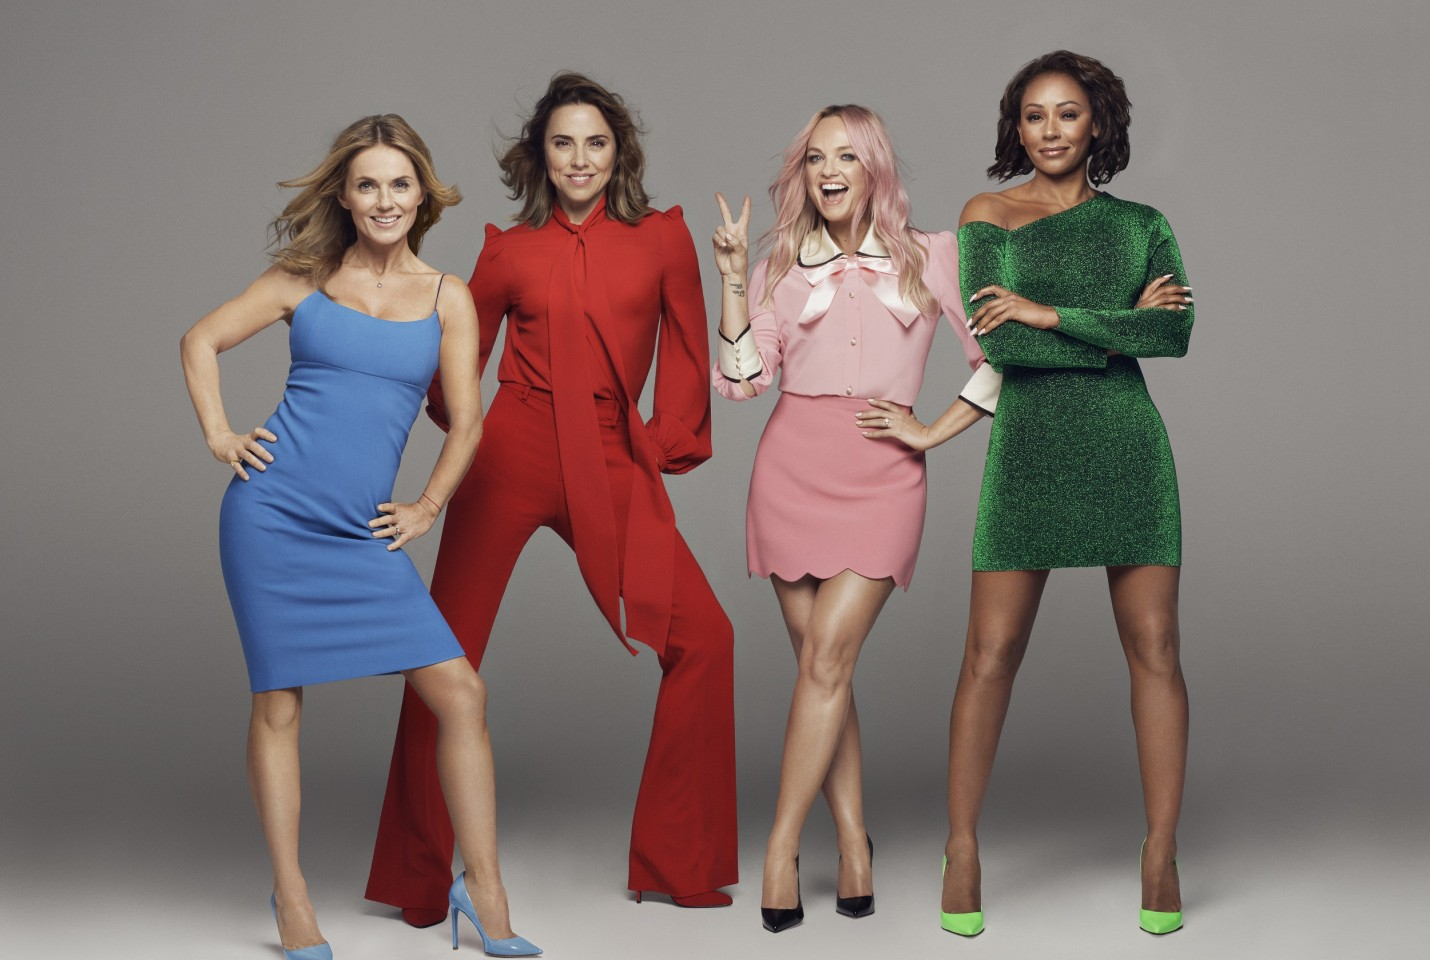 Spice Girls at BT Murrayfield Edinburgh - Key Info